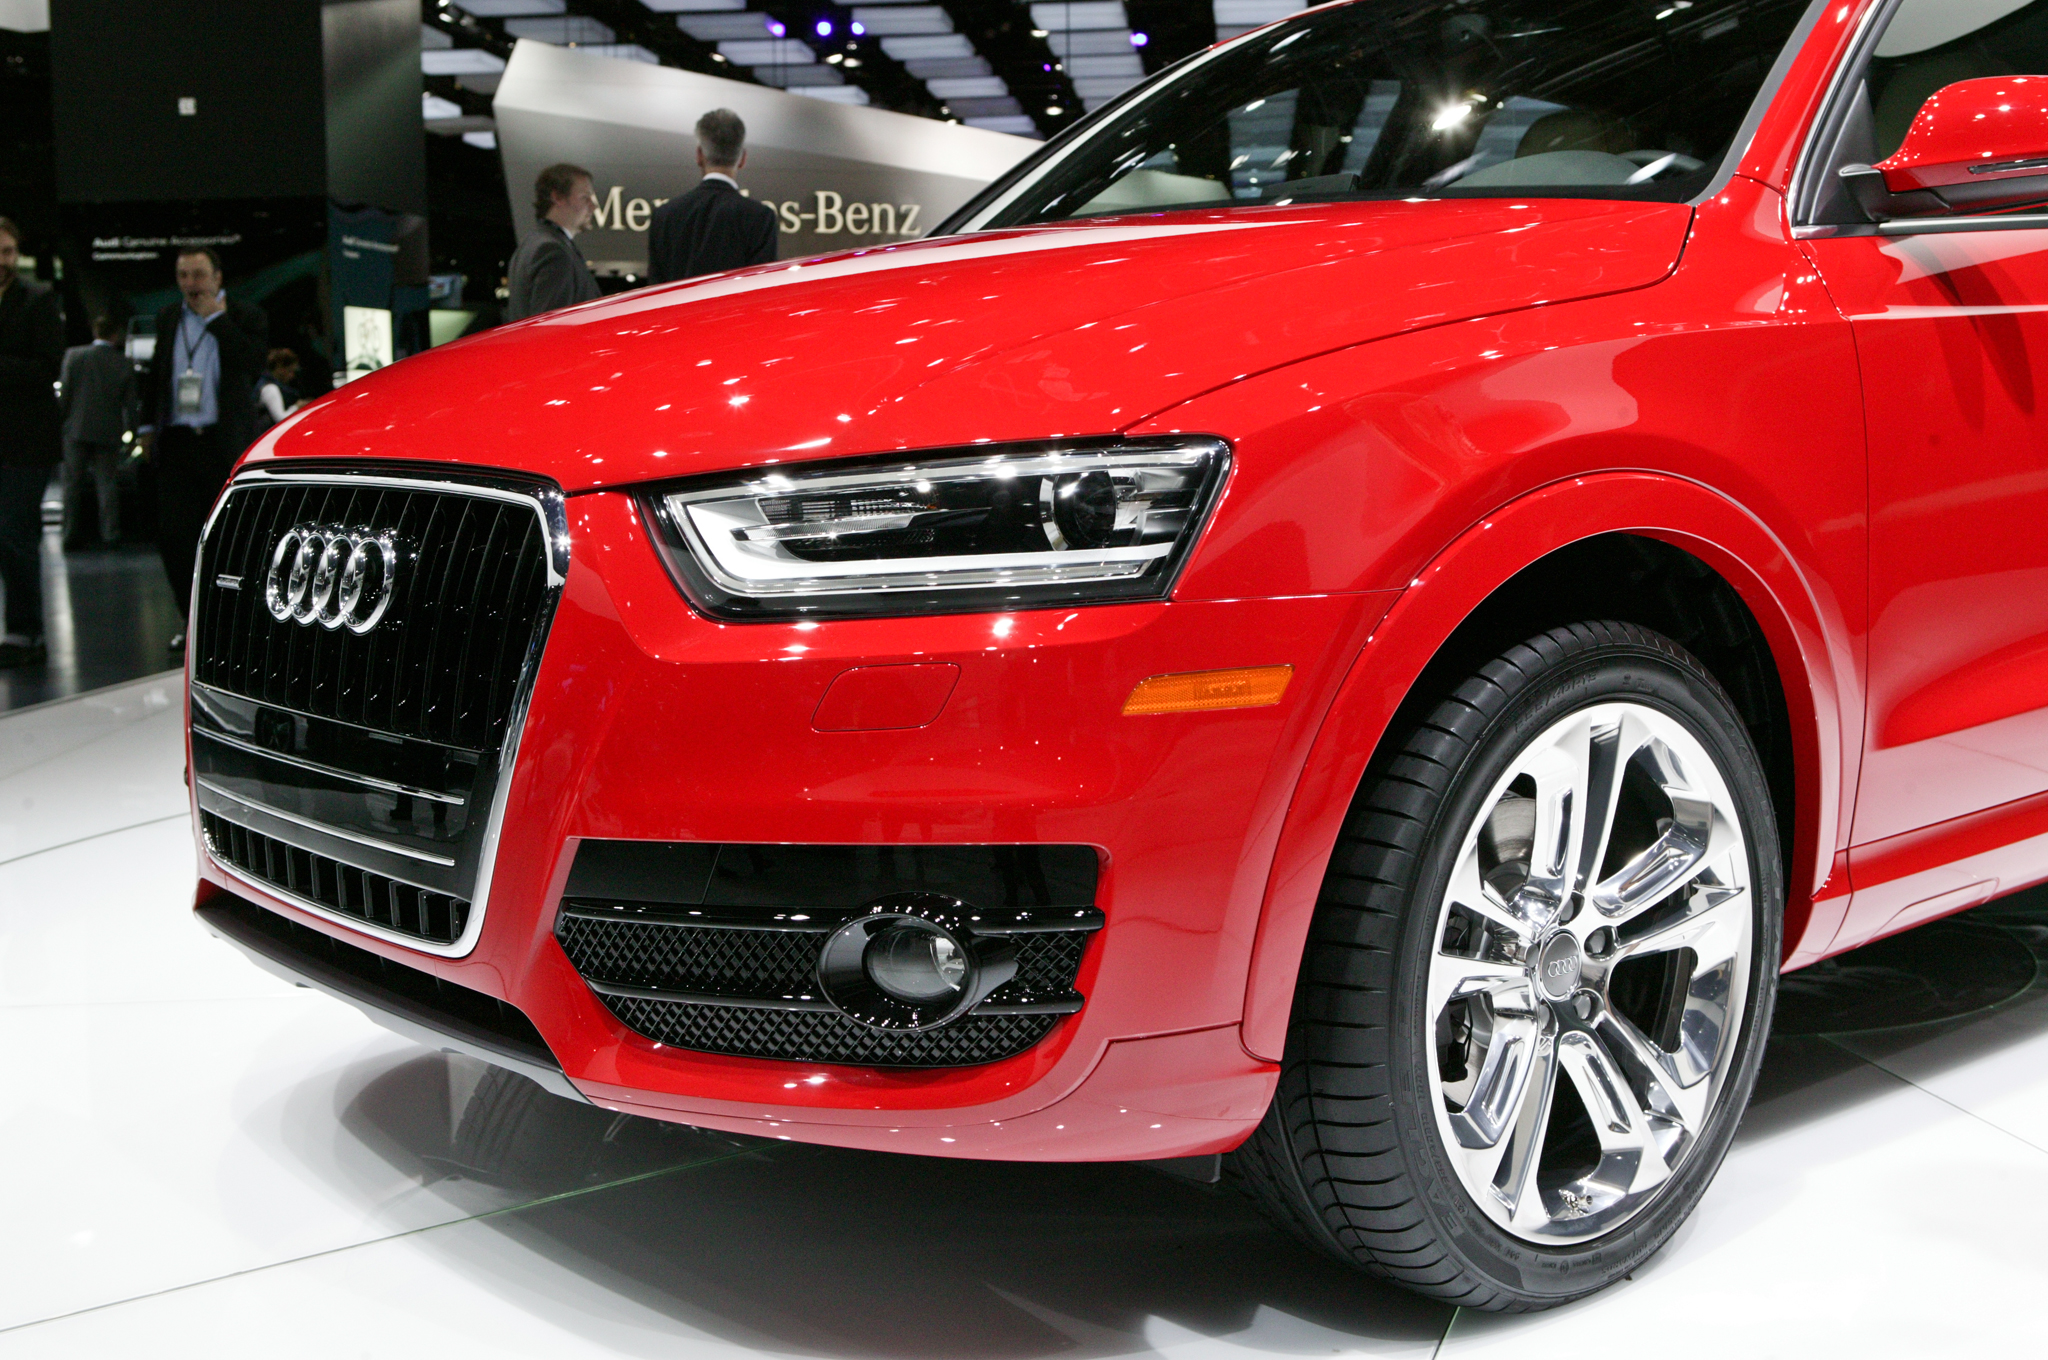 2015 Audi Q3 Front Fog Lamp (Photo 6 of 21)